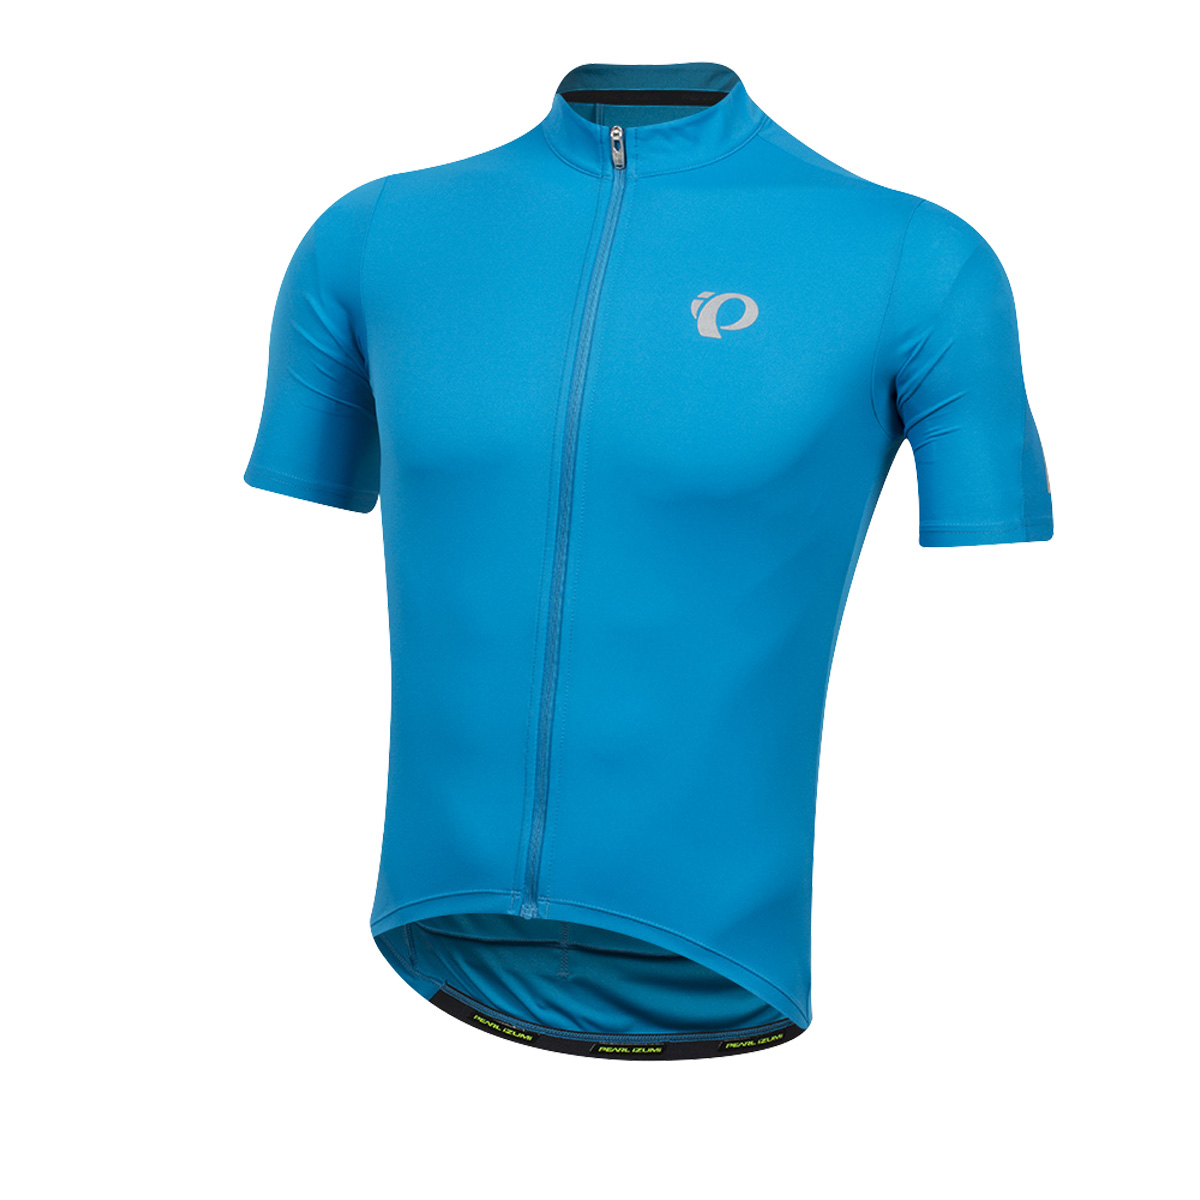 Pearl Izumi 2018 19 Men s Select Pursuit Short Sleeve Cycling Jersey -  11121825 58f191315